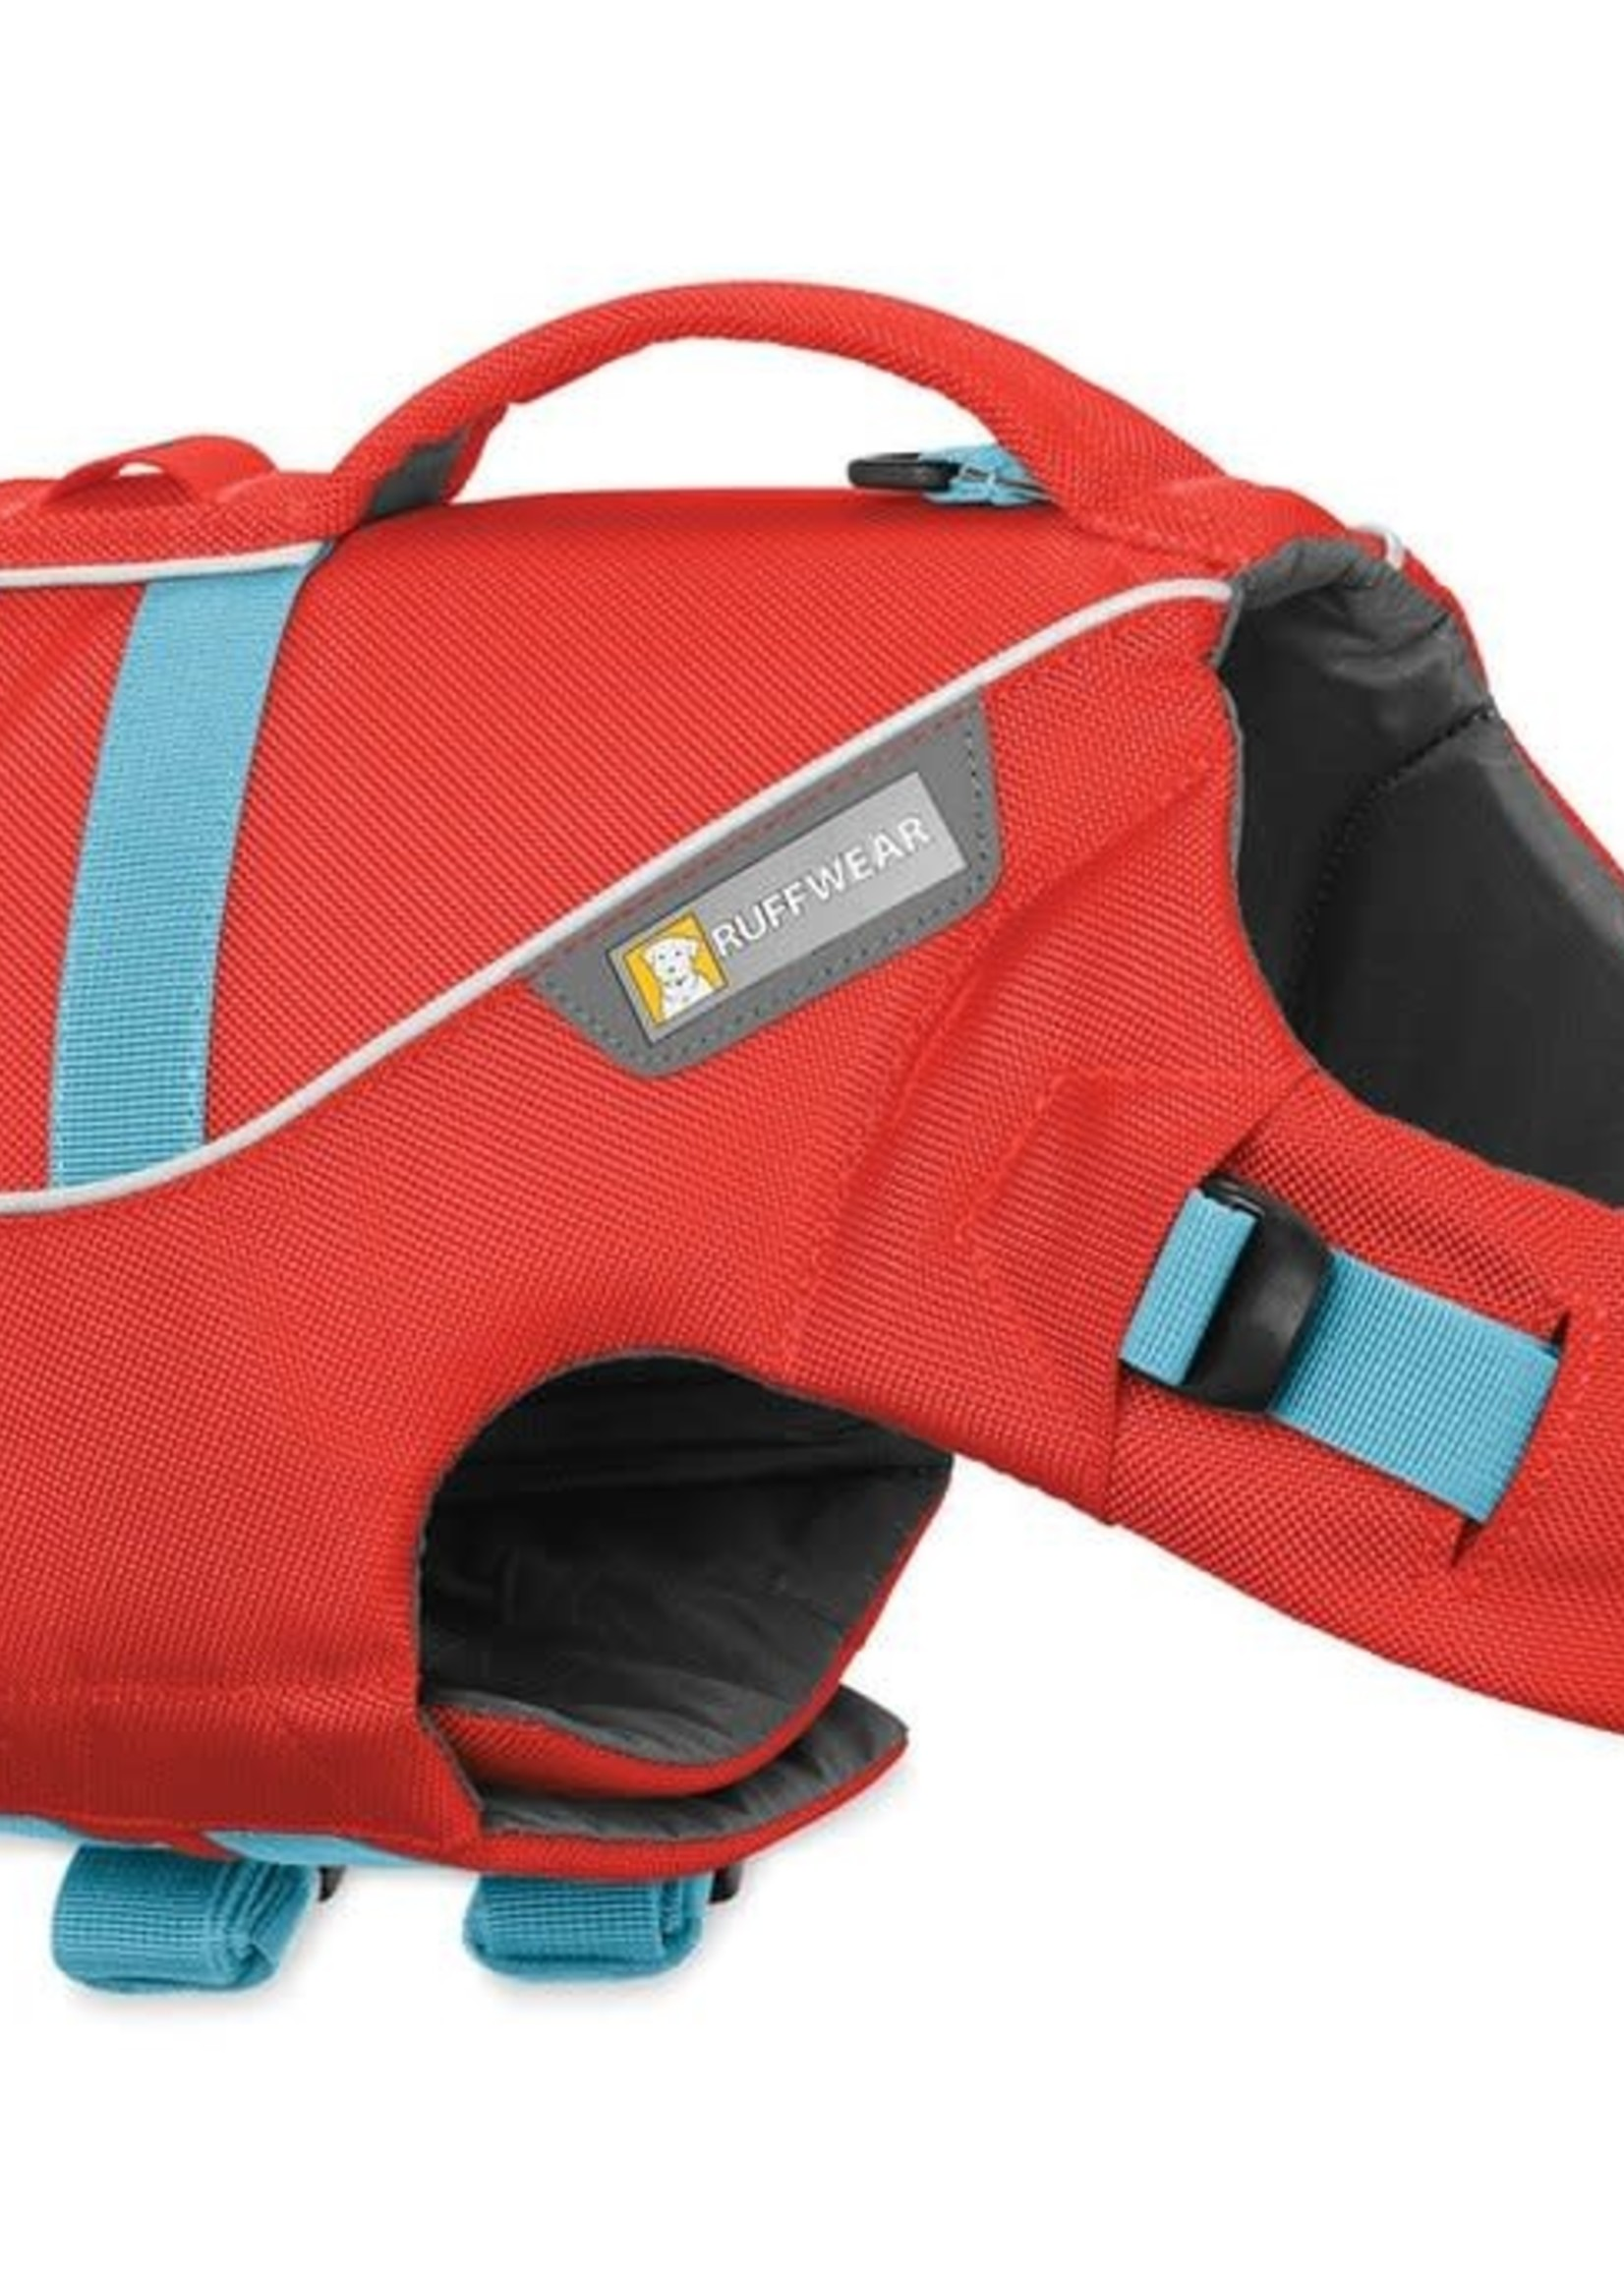 Ruffwear Ruffwear Float Coat Dog Life Jacket